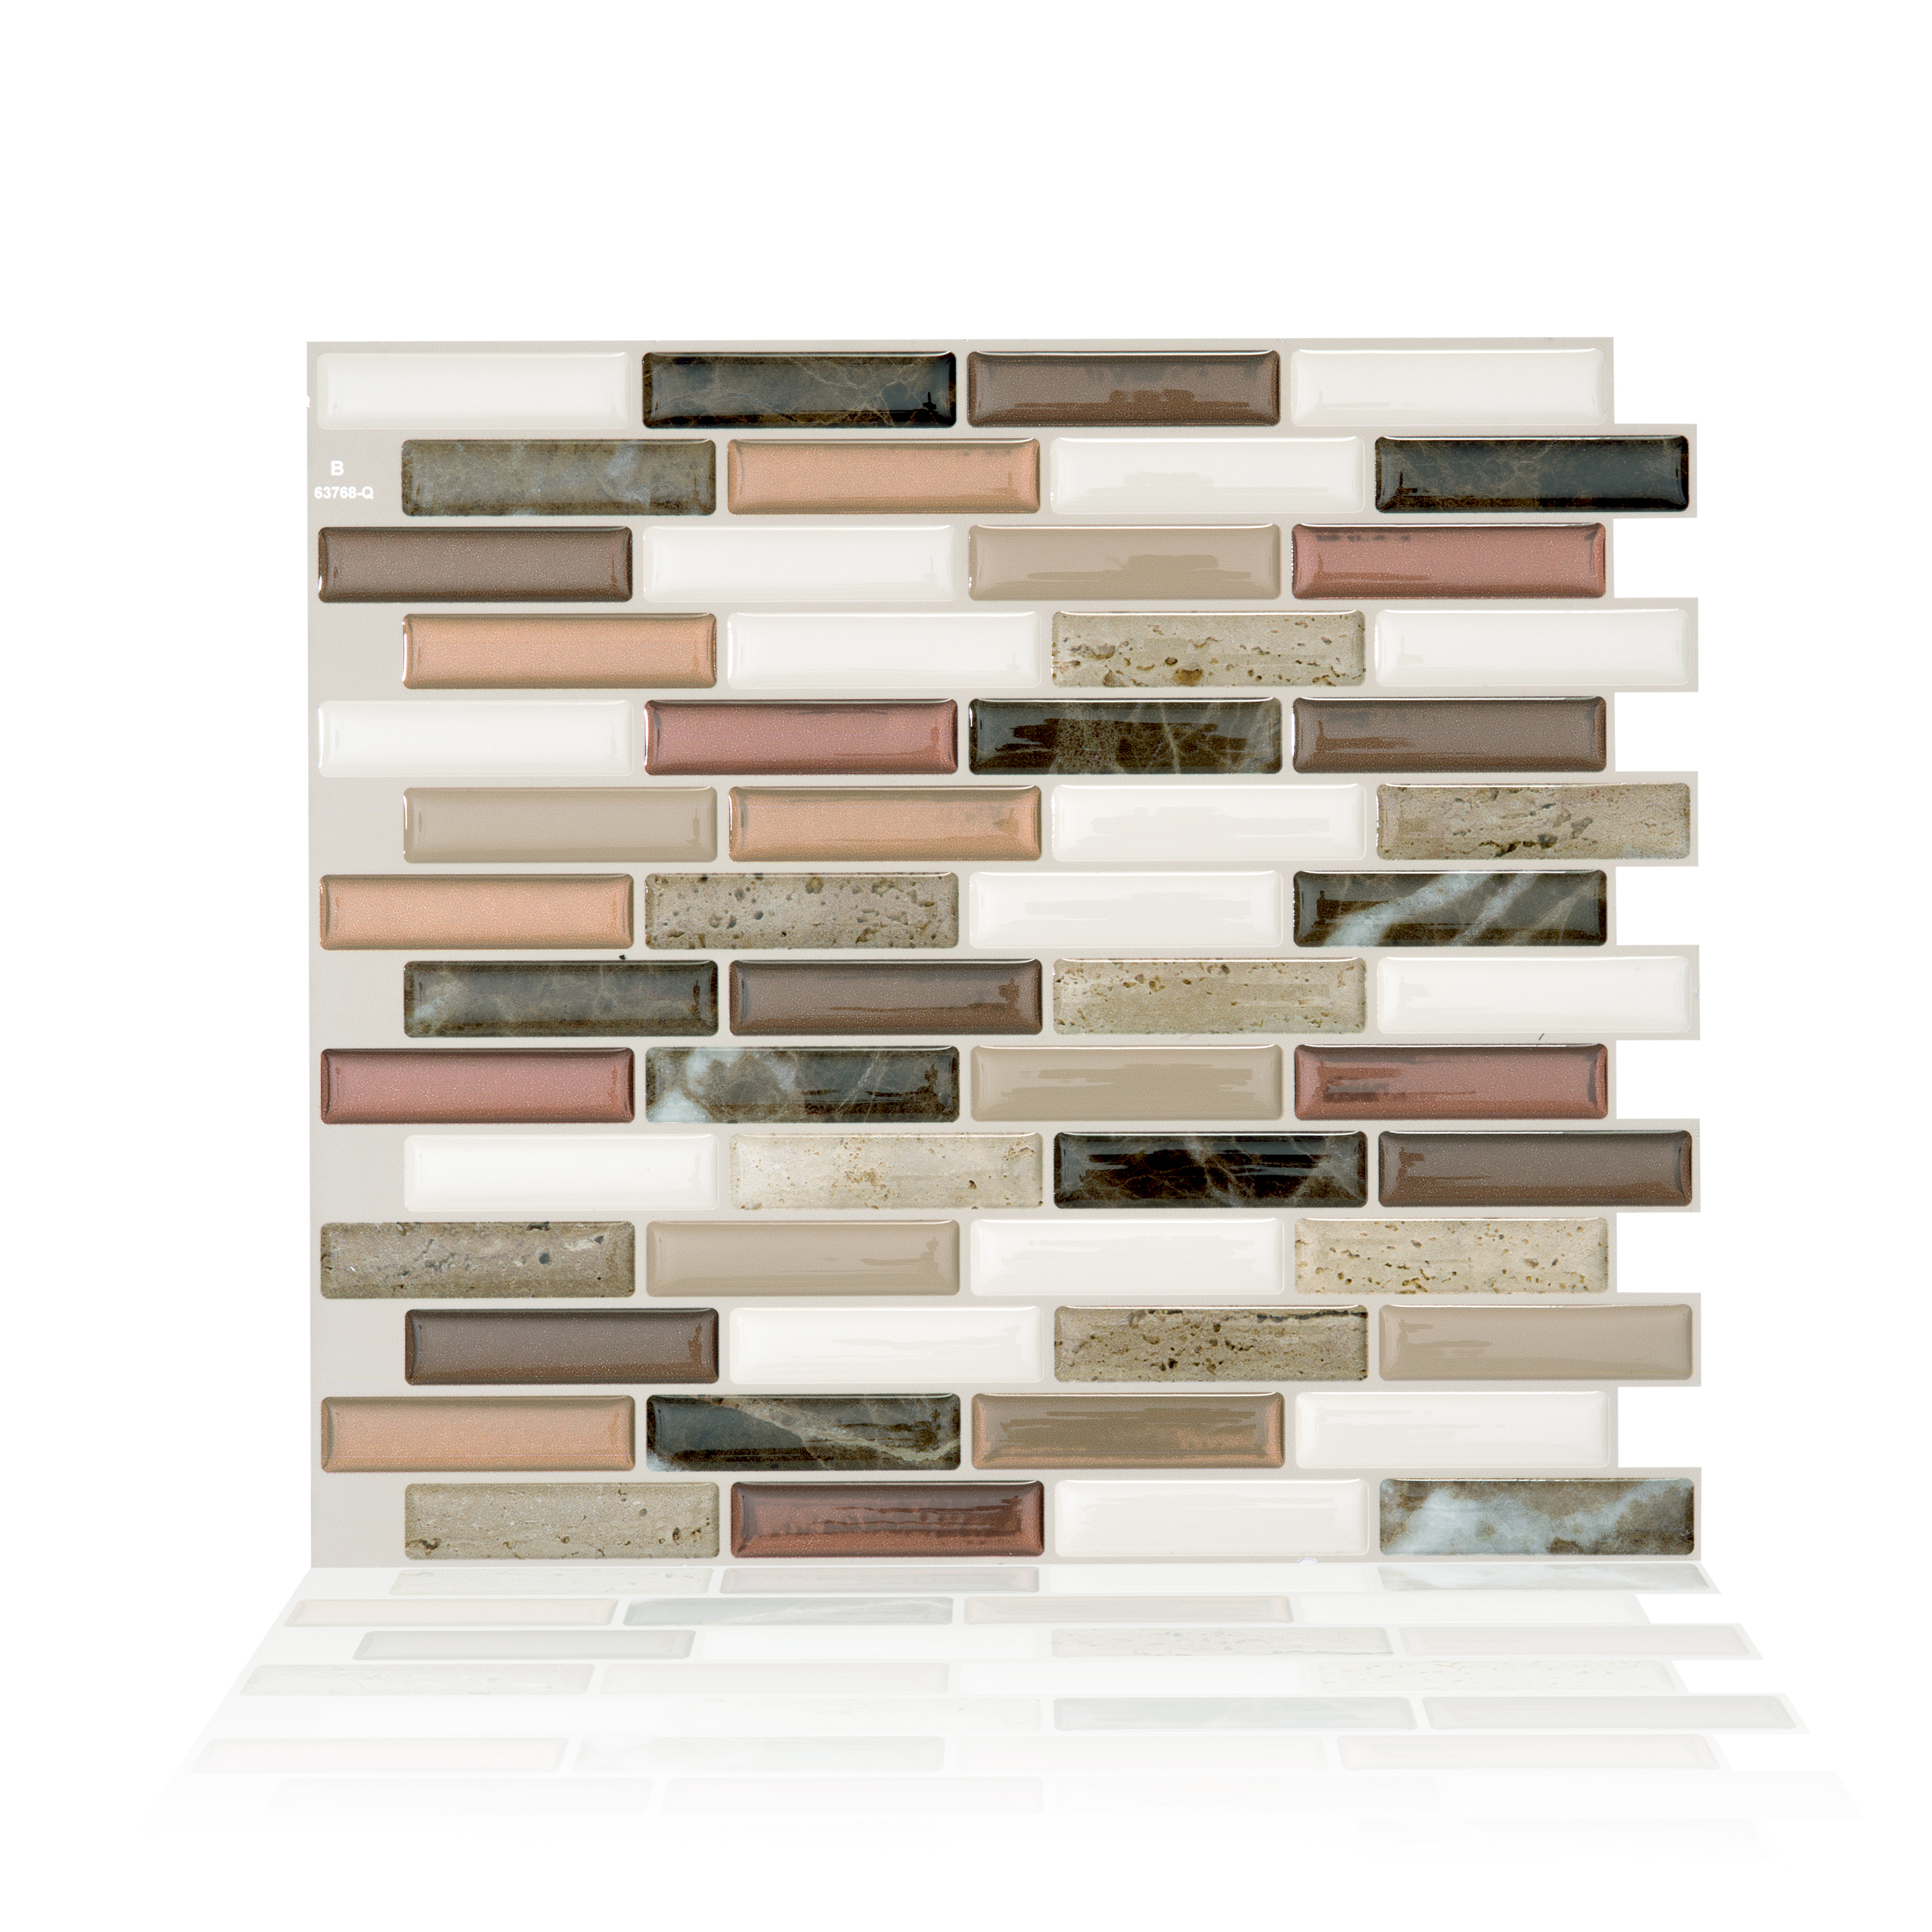 Smart Tiles 10.20 in x 9 in Peel and Stick Self-Adhesive Mosaic Backsplash Wall Tile - Milenza Taddio (each)